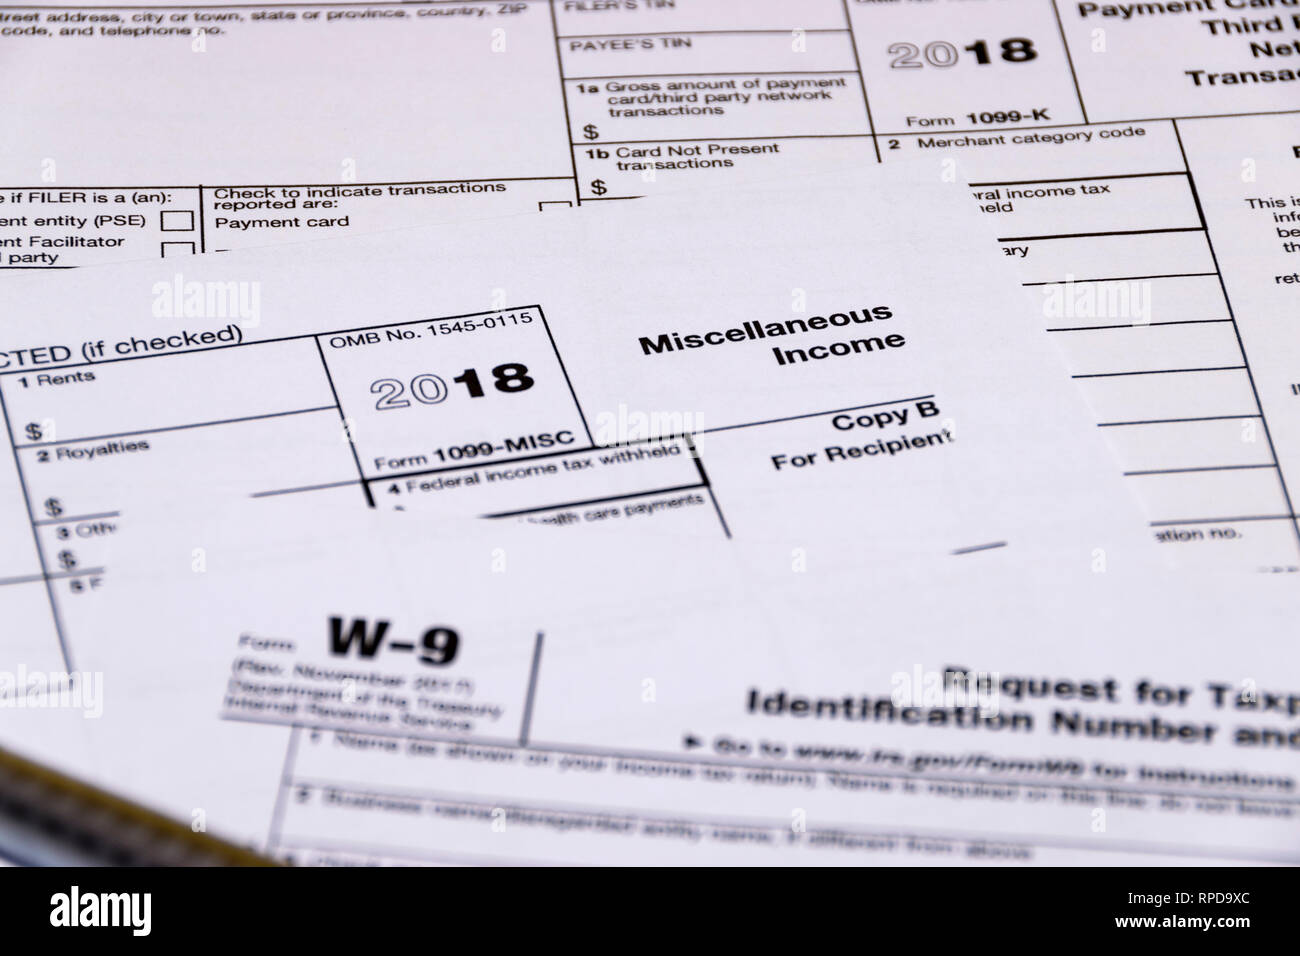 Composed shot of IRS tax forms 1099-MISC, 1099-K and W-9. - Stock Image